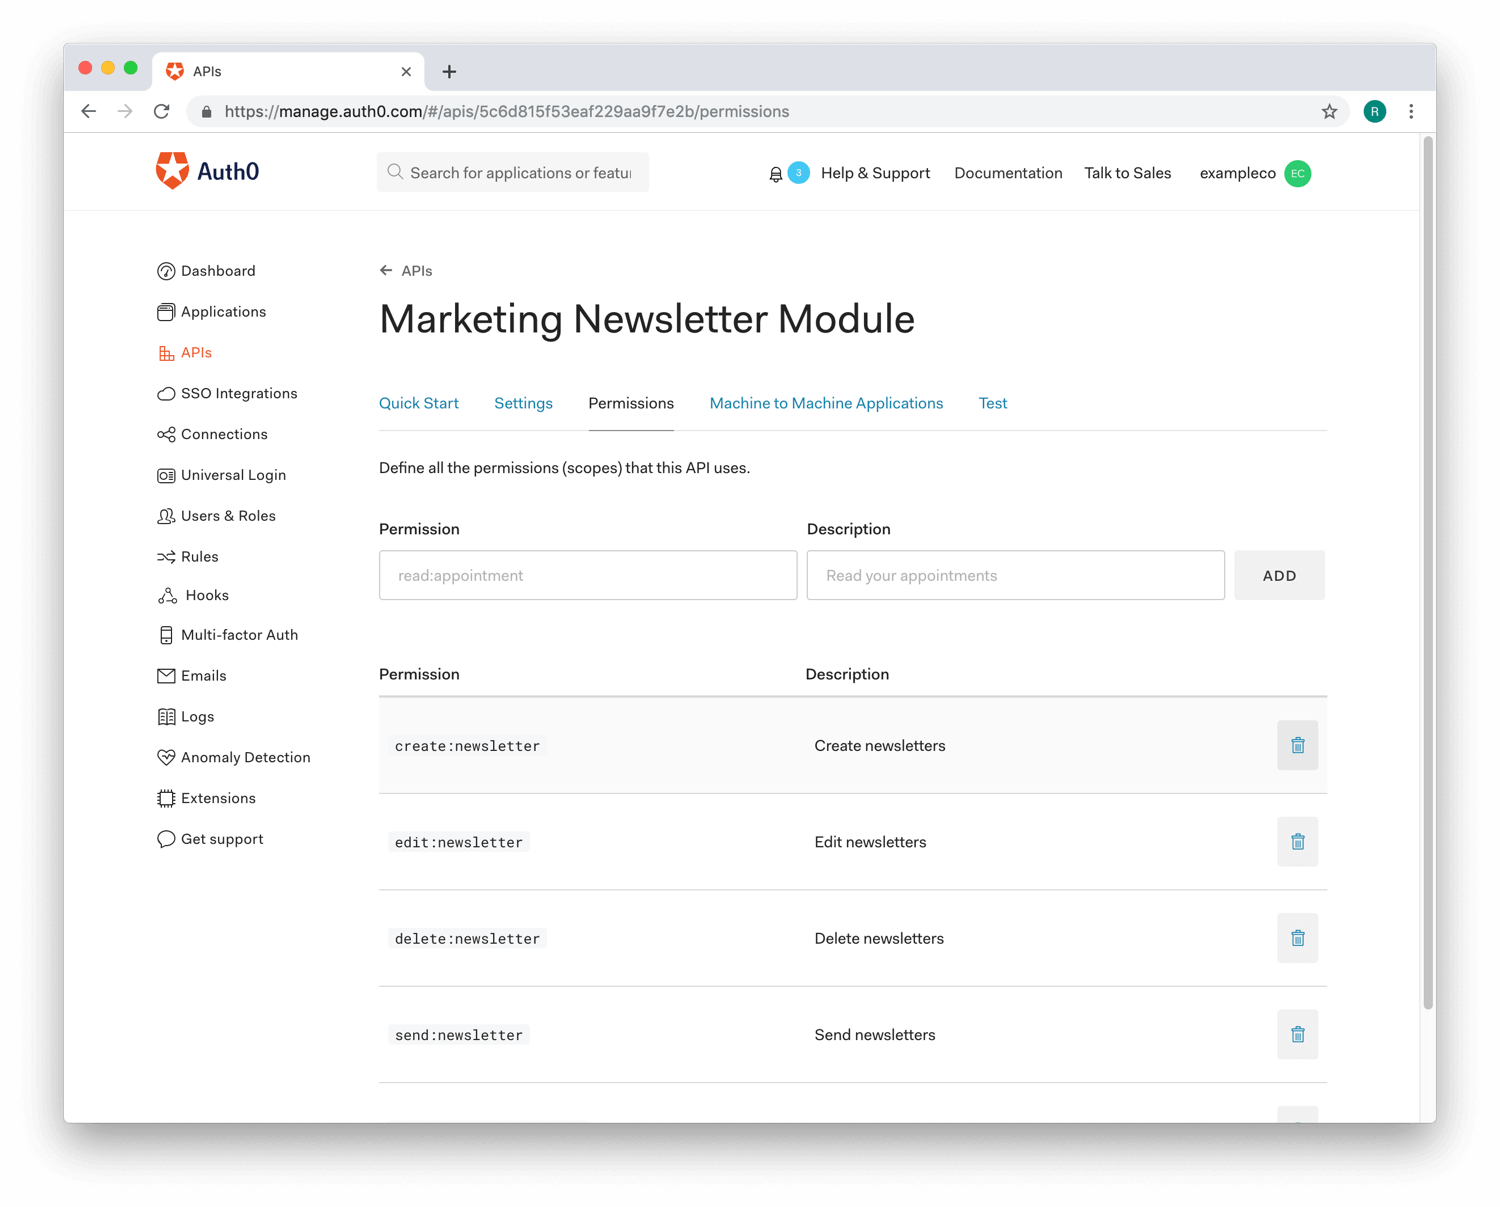 Image of the Permissions view of the API section from the Auth0 Dashboard